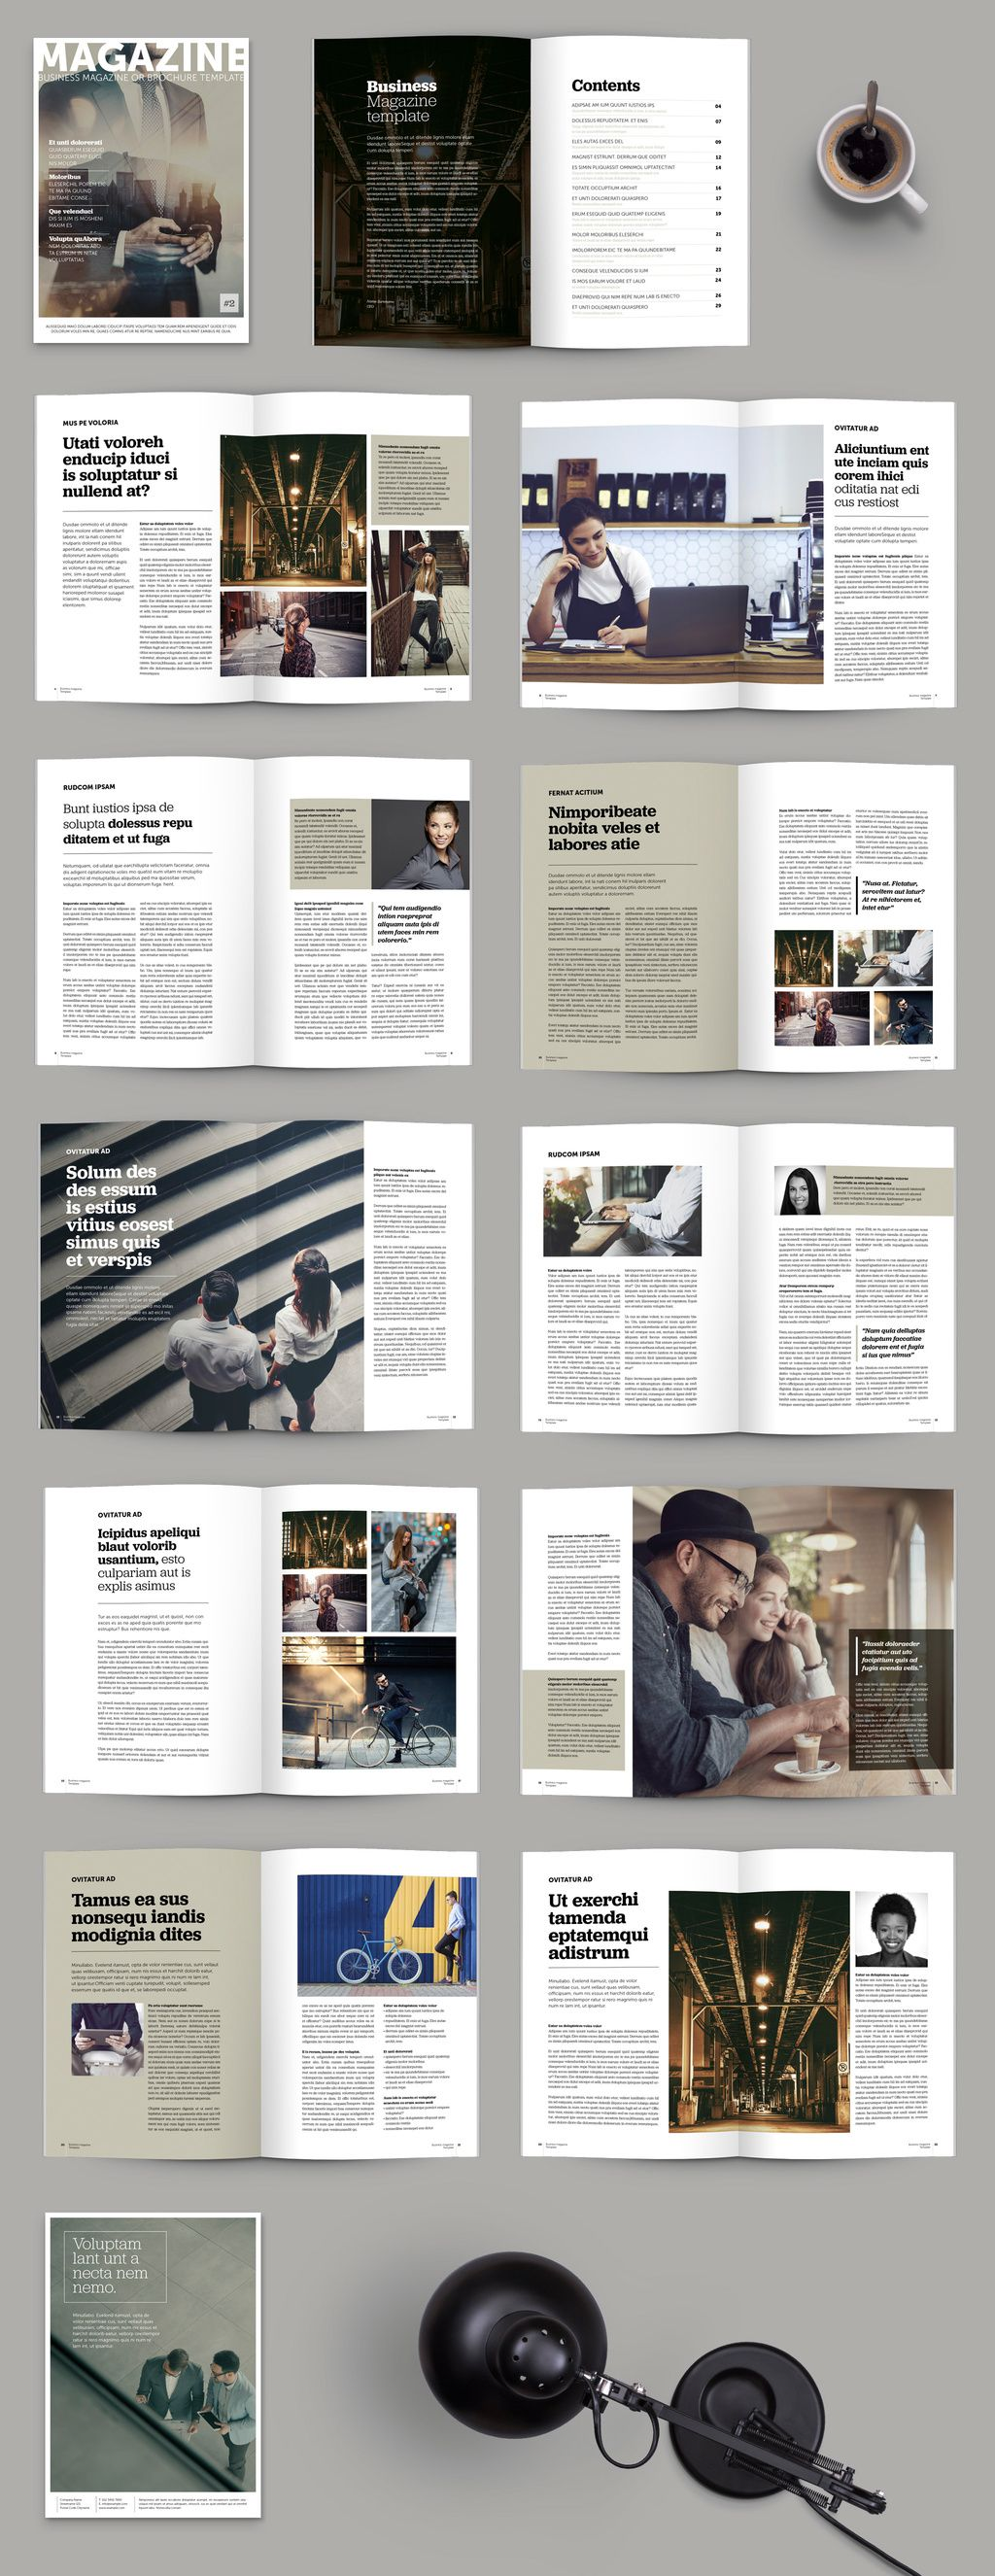 Indesign brochure or magazine template. Acquista questo modello stock ed esplora modelli simili in Adobe Stock | Adobe Stock #editoriallayout